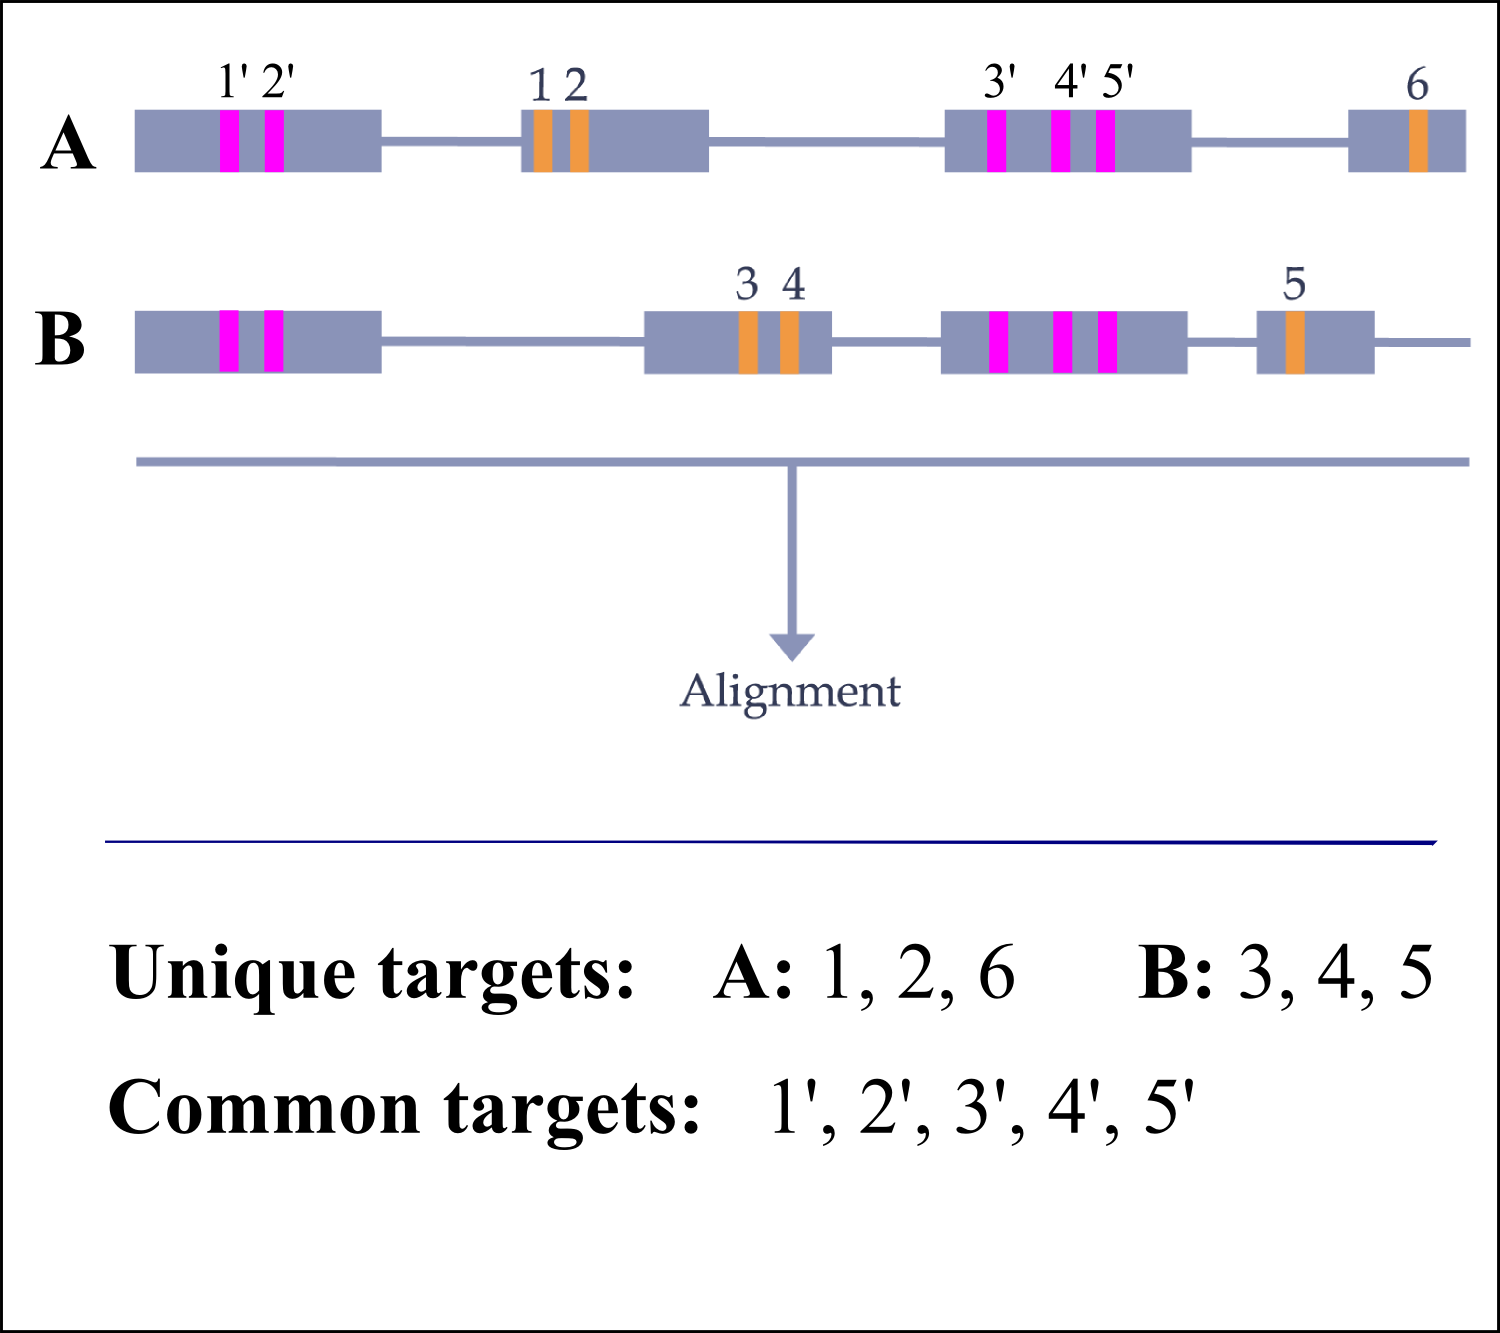 Input genes for specific CRISPRs